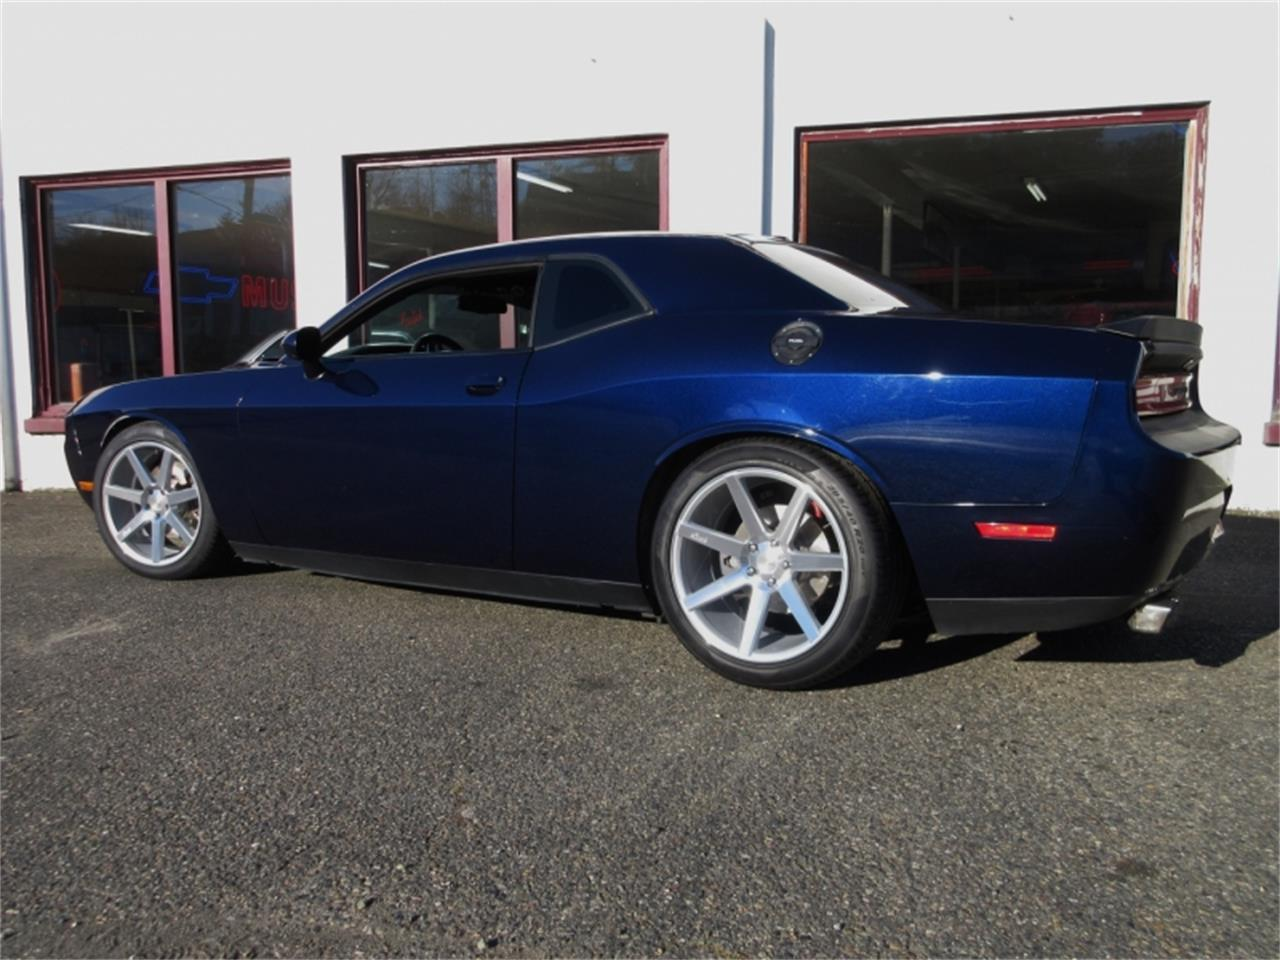 2013 Dodge Challenger for sale in Tocoma, WA – photo 15